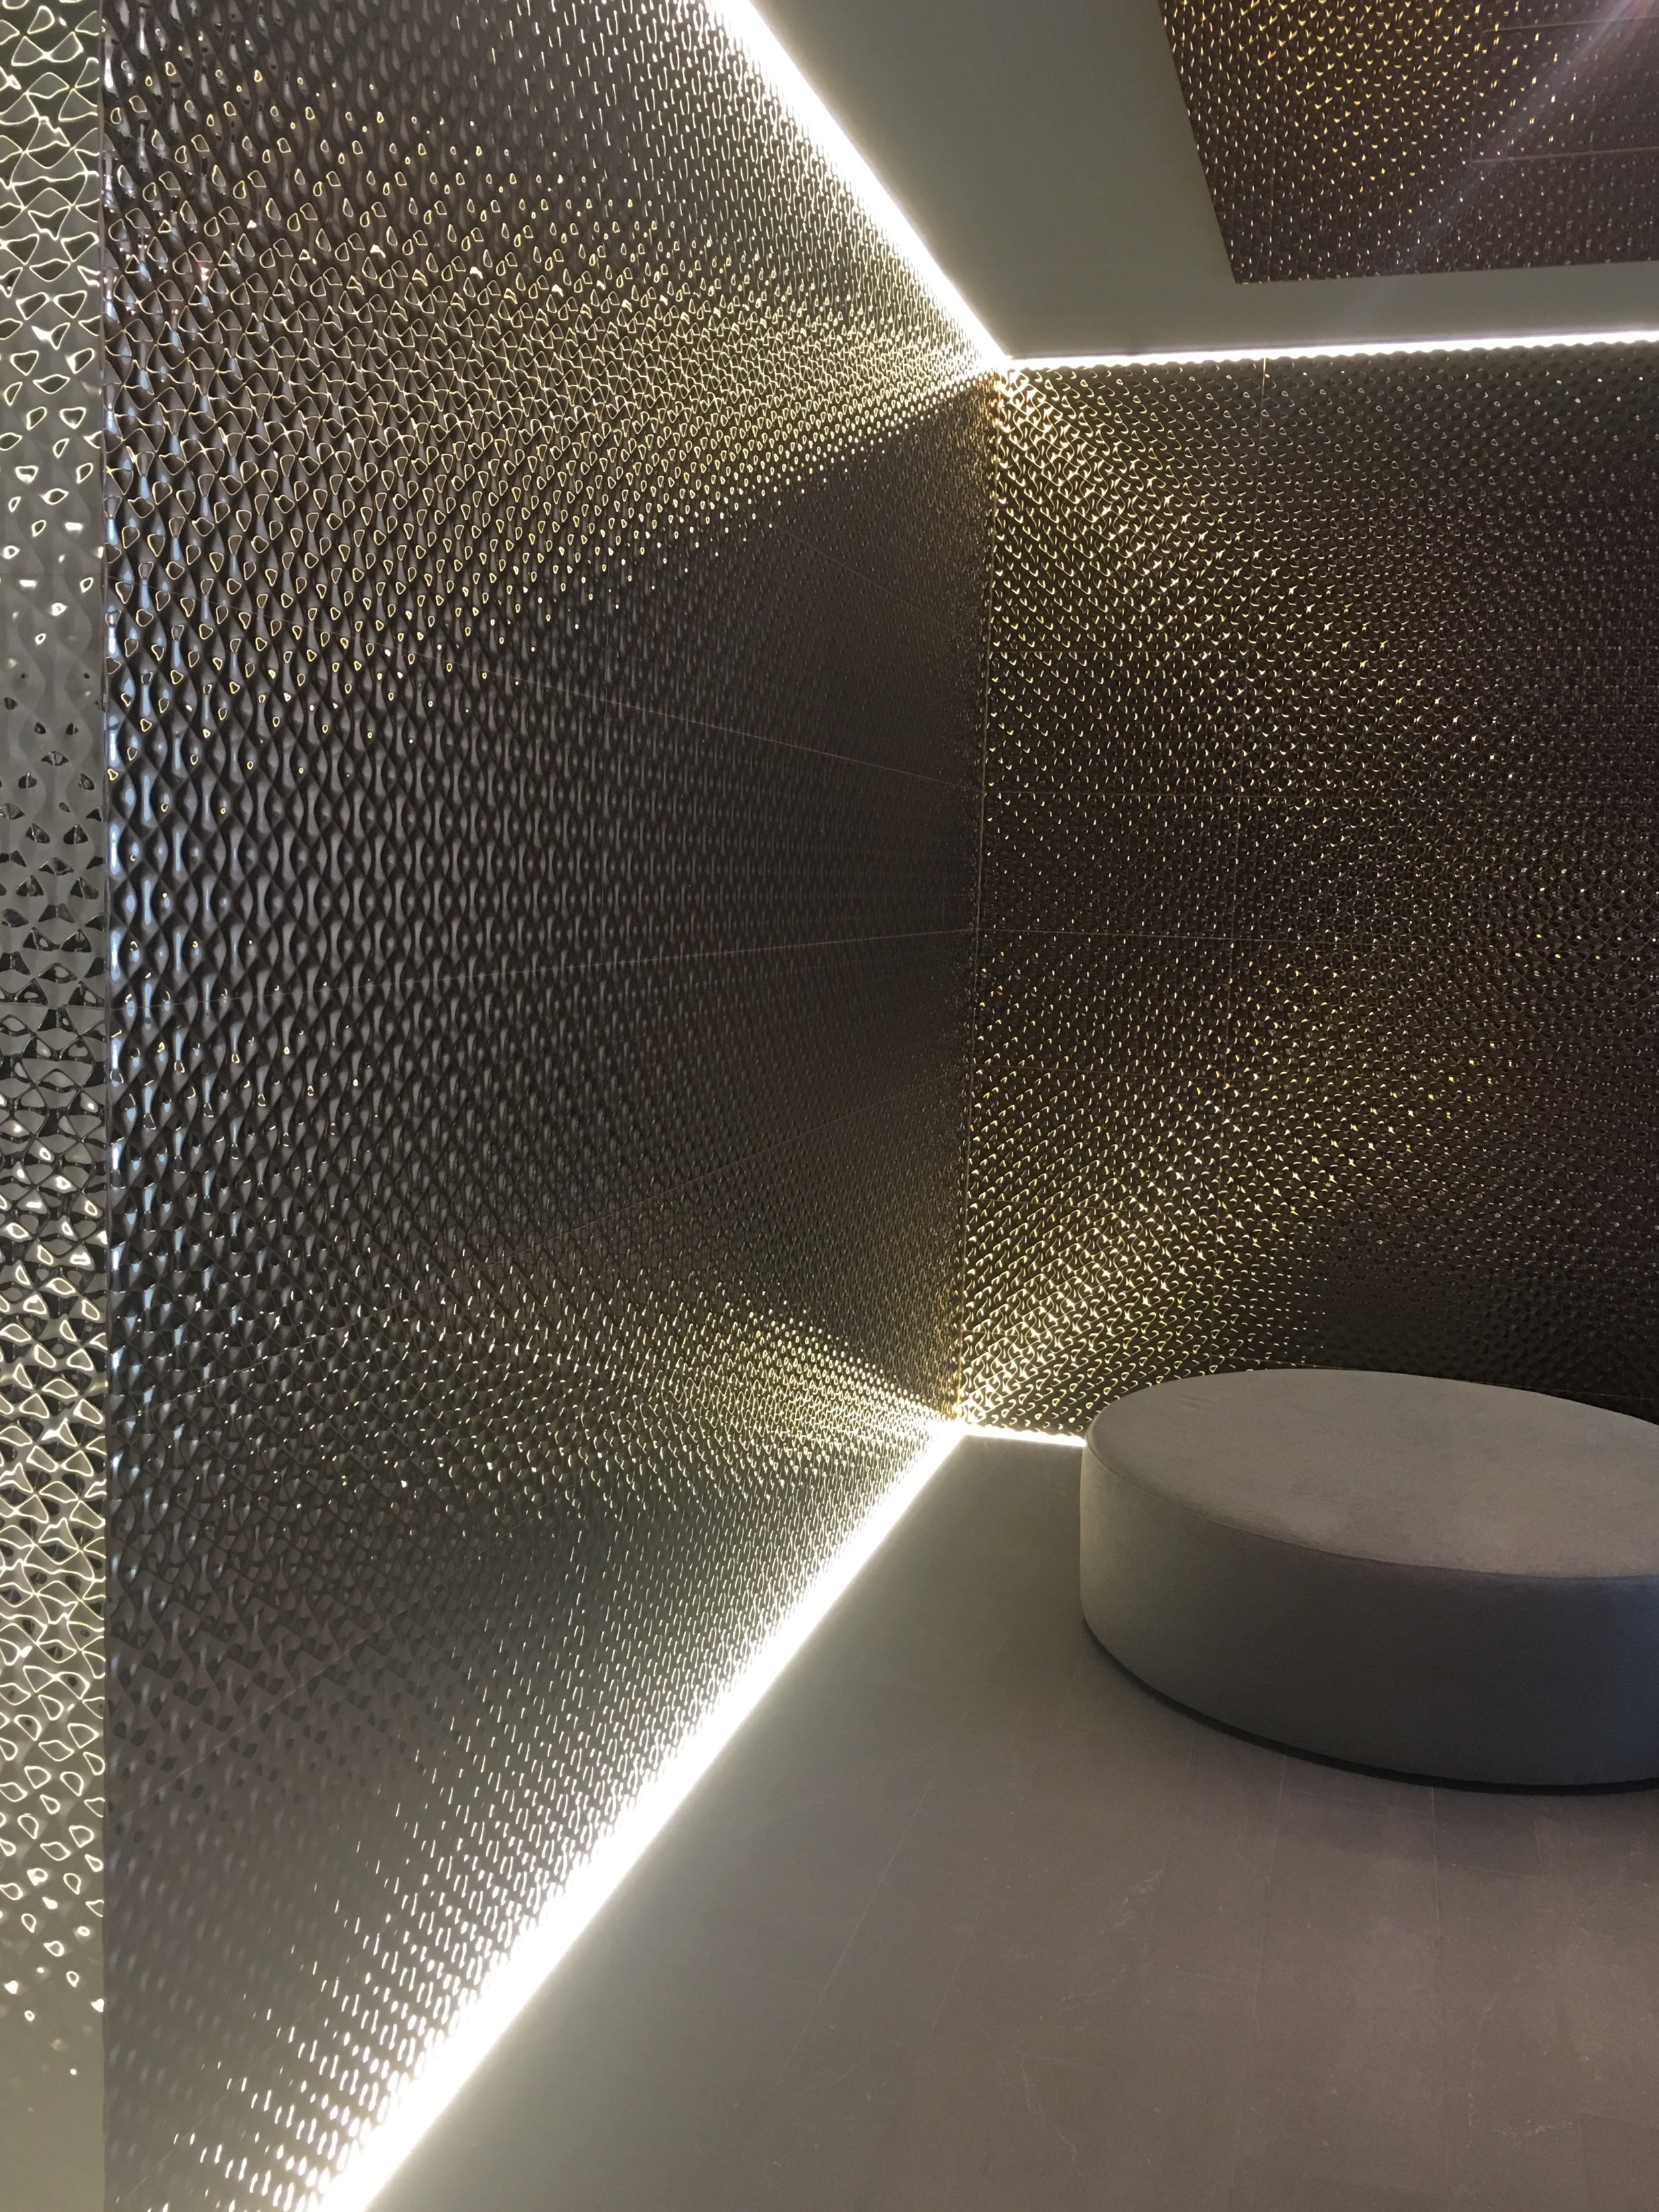 Striking geometric wall tile, with recessed lighting to highlight the design features